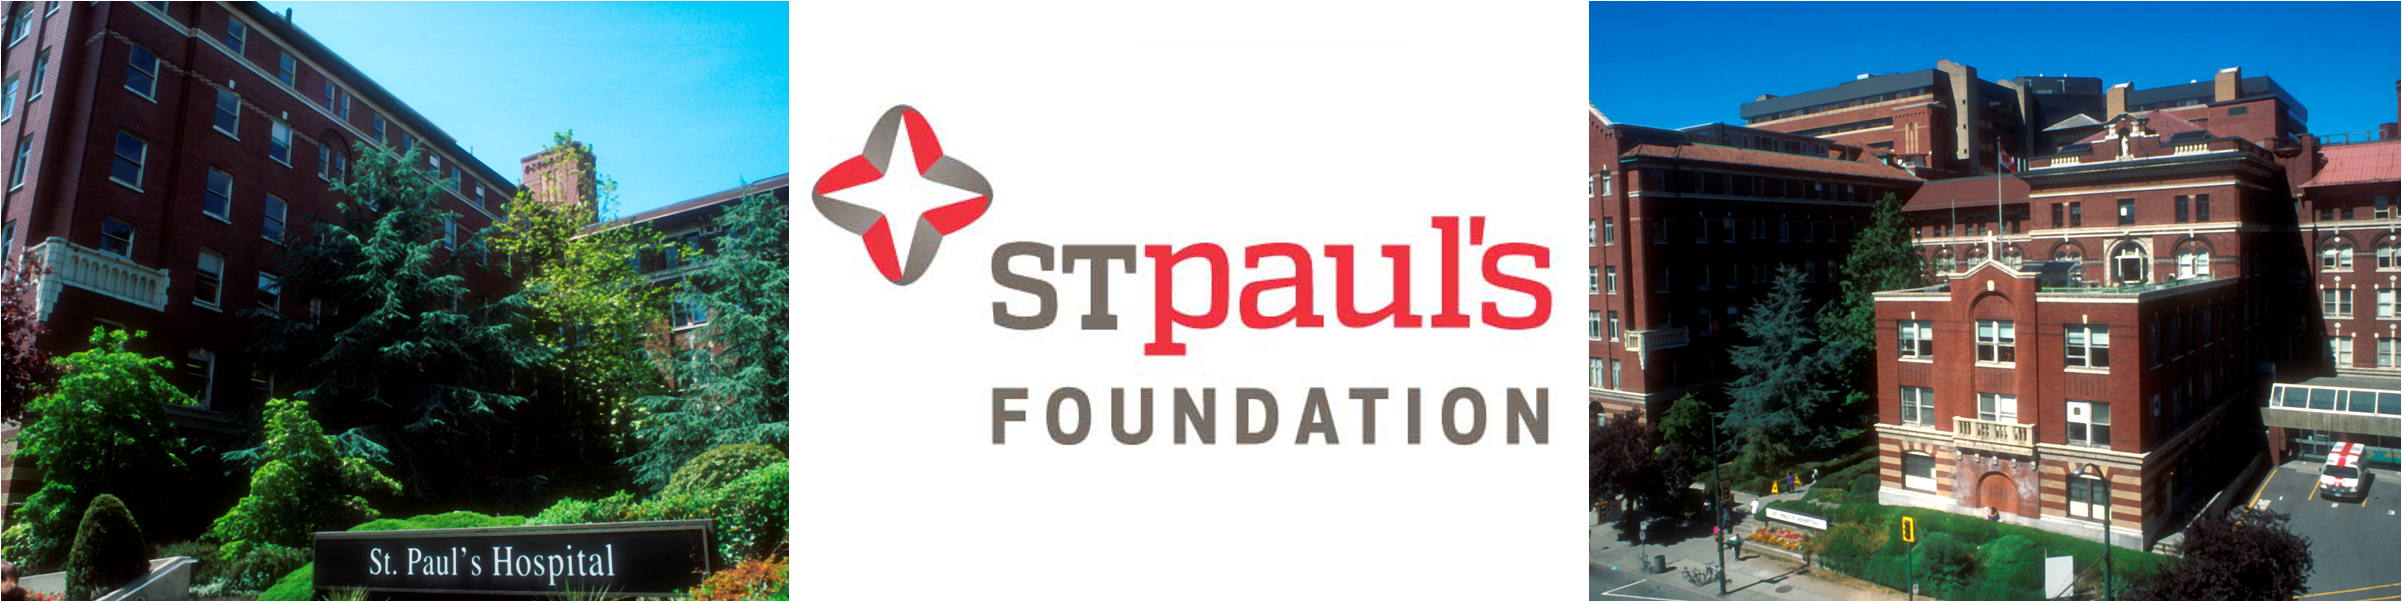 St. Paul's Foundation